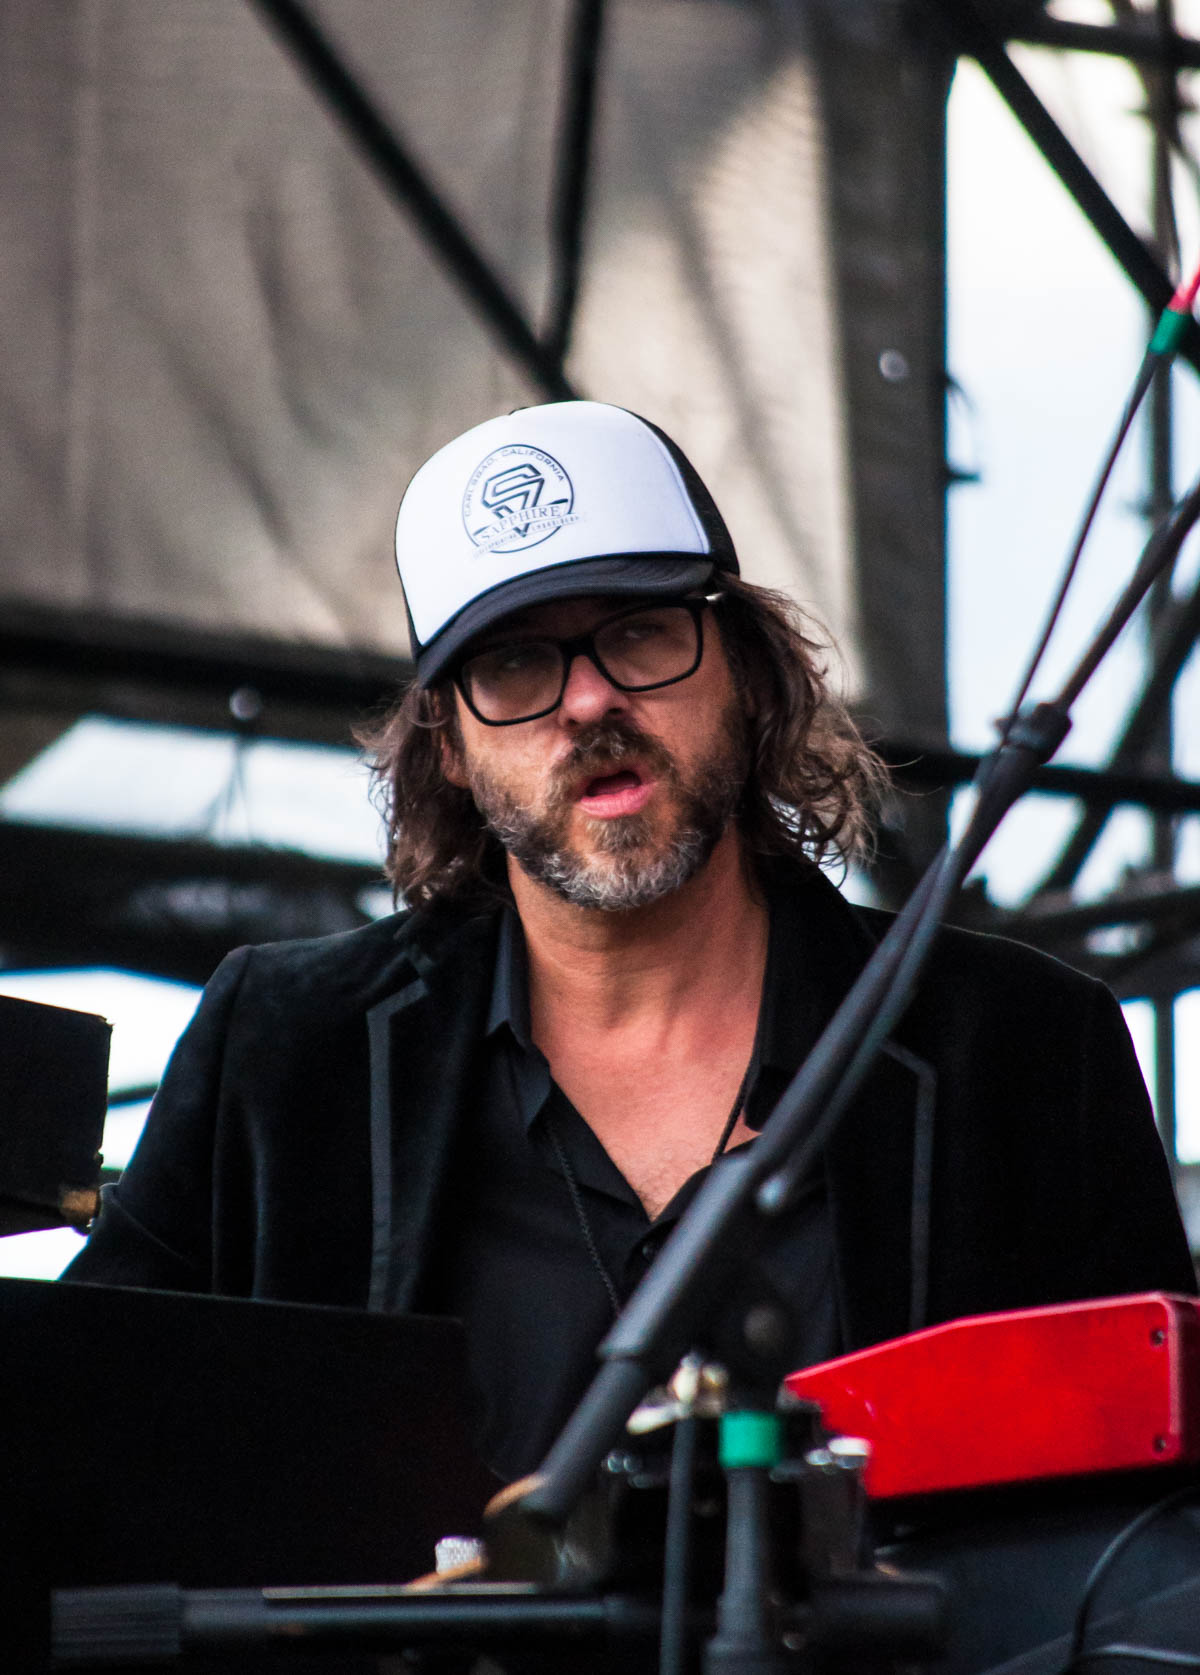 David Veith, keyboardist for KDTU ||  The Lawn at White River State Park || Indianapolis, IN || 06/23/19